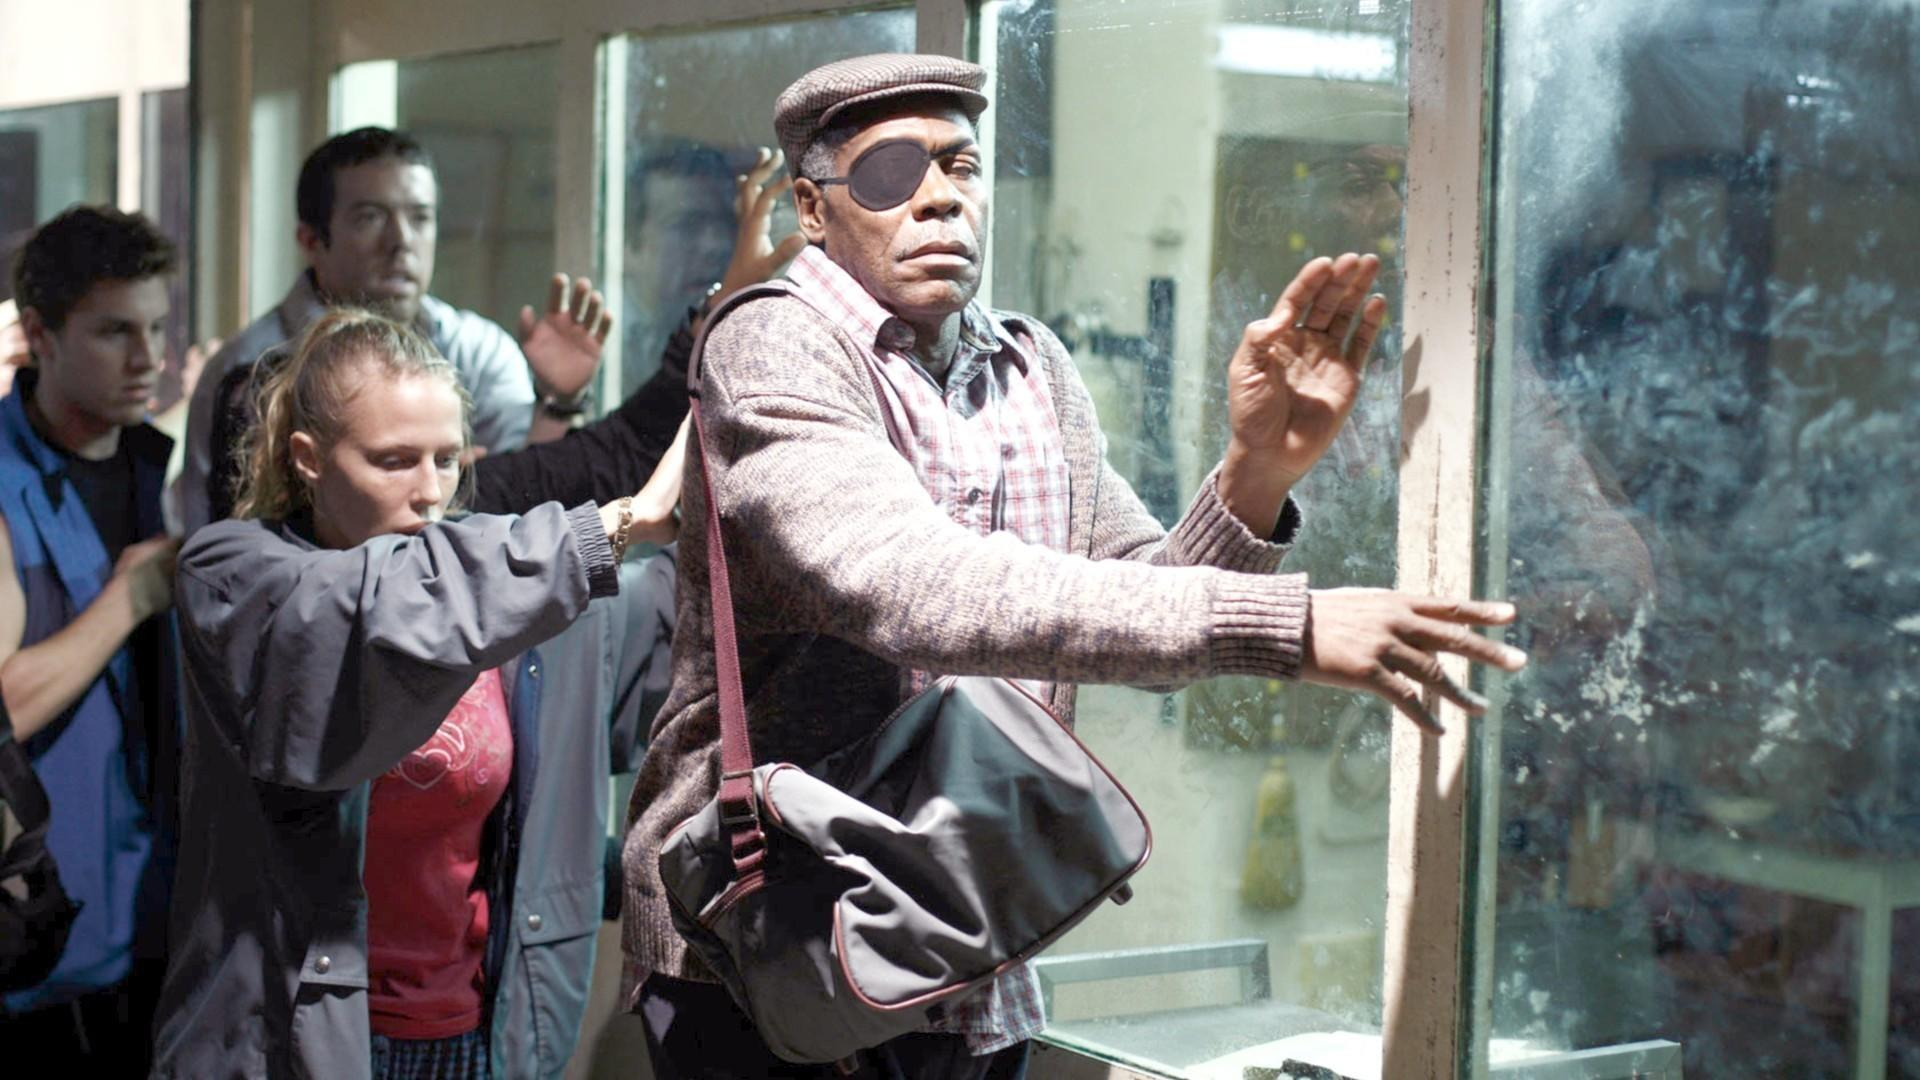 Danny Glover leads the blind in Blindness (2008)